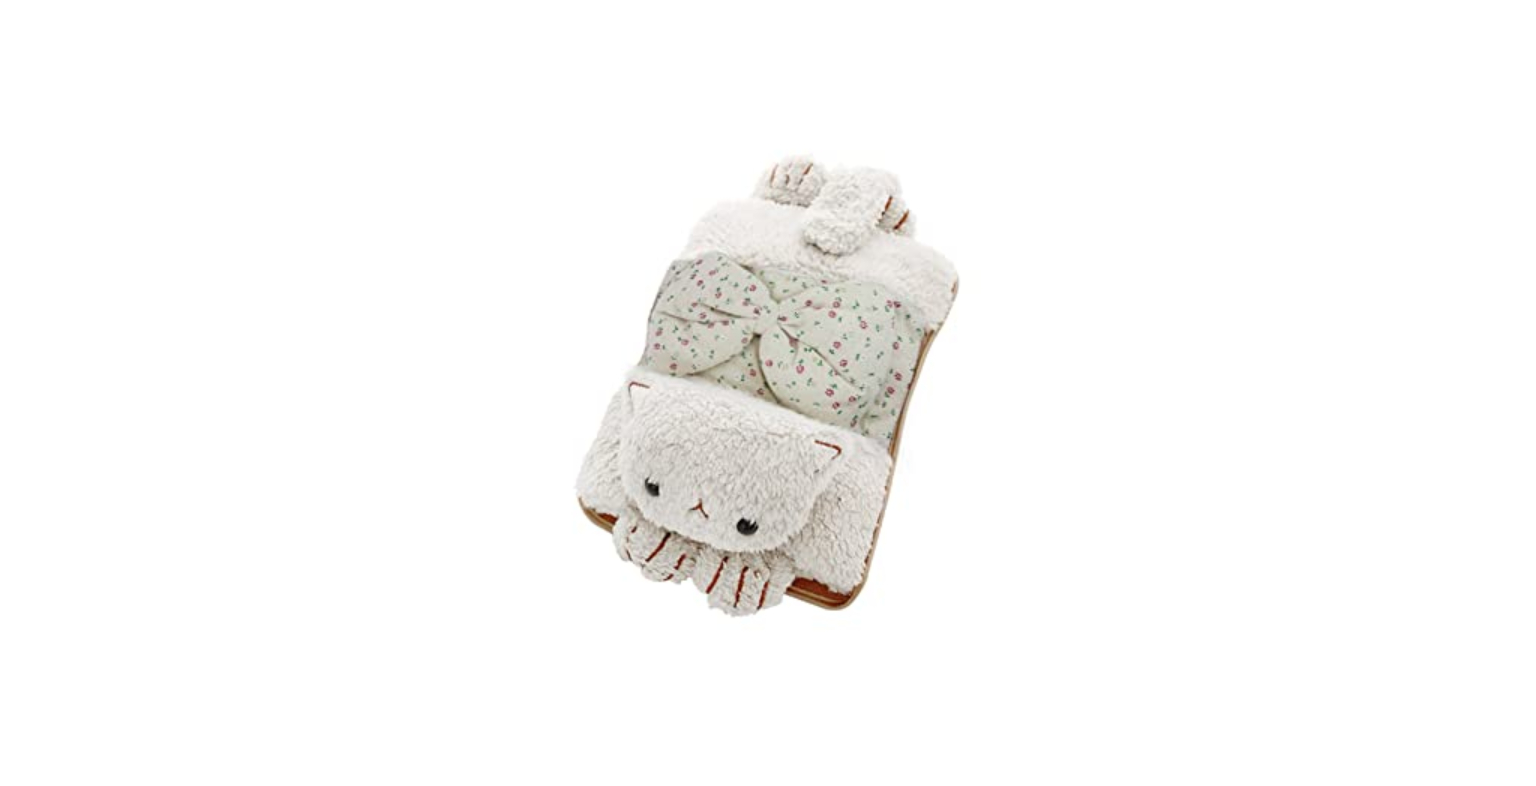 Toyuugo Heated Hot Water Bottle with Soft Fleece Cover